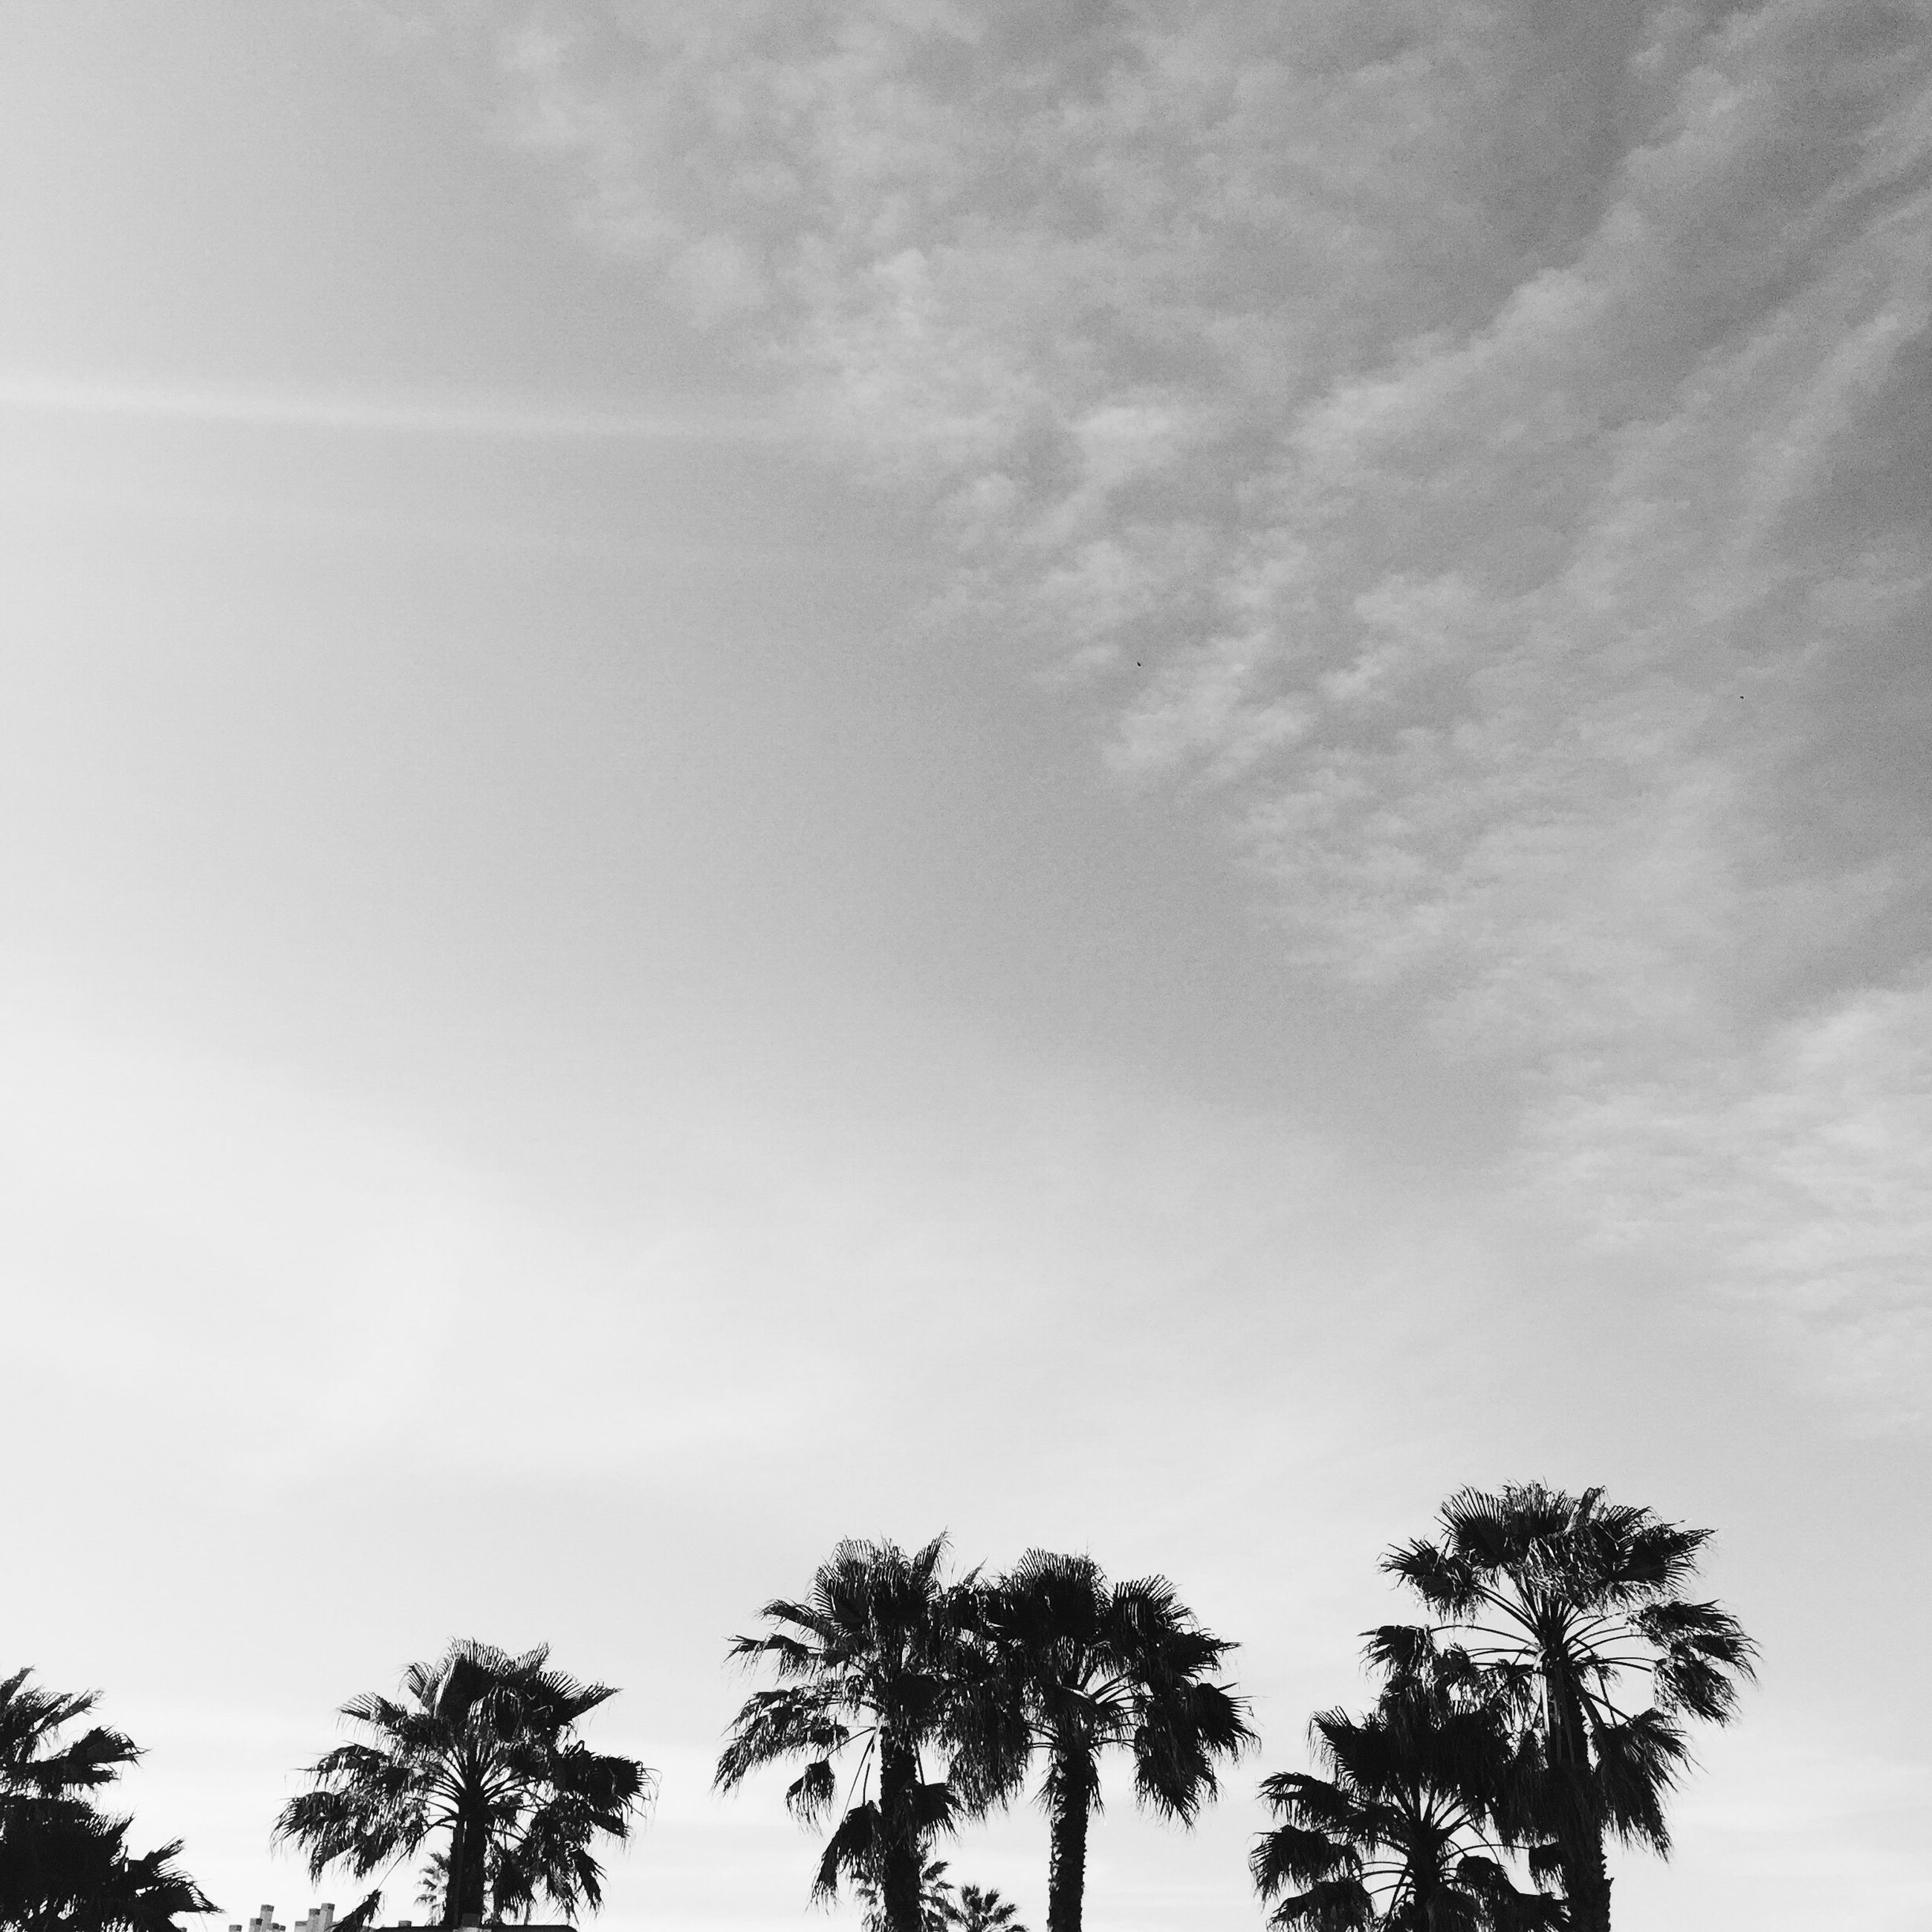 low angle view, tree, palm tree, sky, tranquility, growth, beauty in nature, nature, silhouette, treetop, scenics, high section, tranquil scene, cloud - sky, branch, outdoors, no people, day, cloud, tree trunk